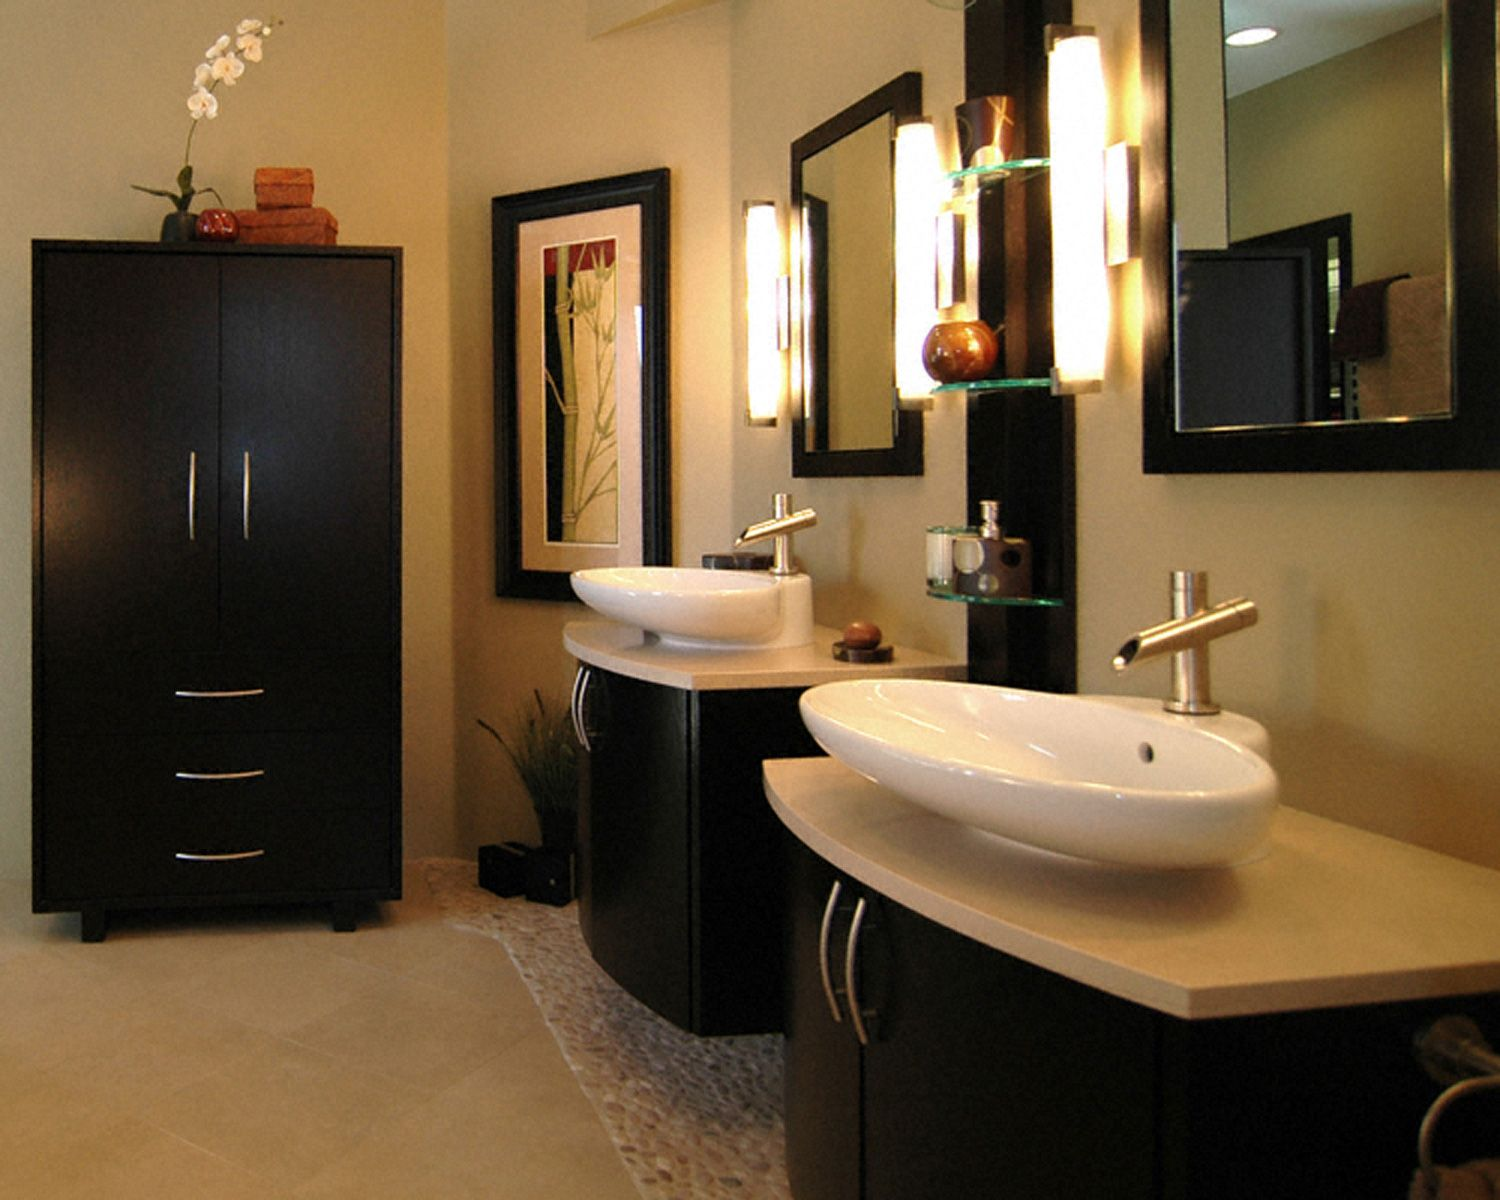 Bathroom Designs Vessel Sinks 25 best asian bathroom design ideas | vessel sink, sinks and